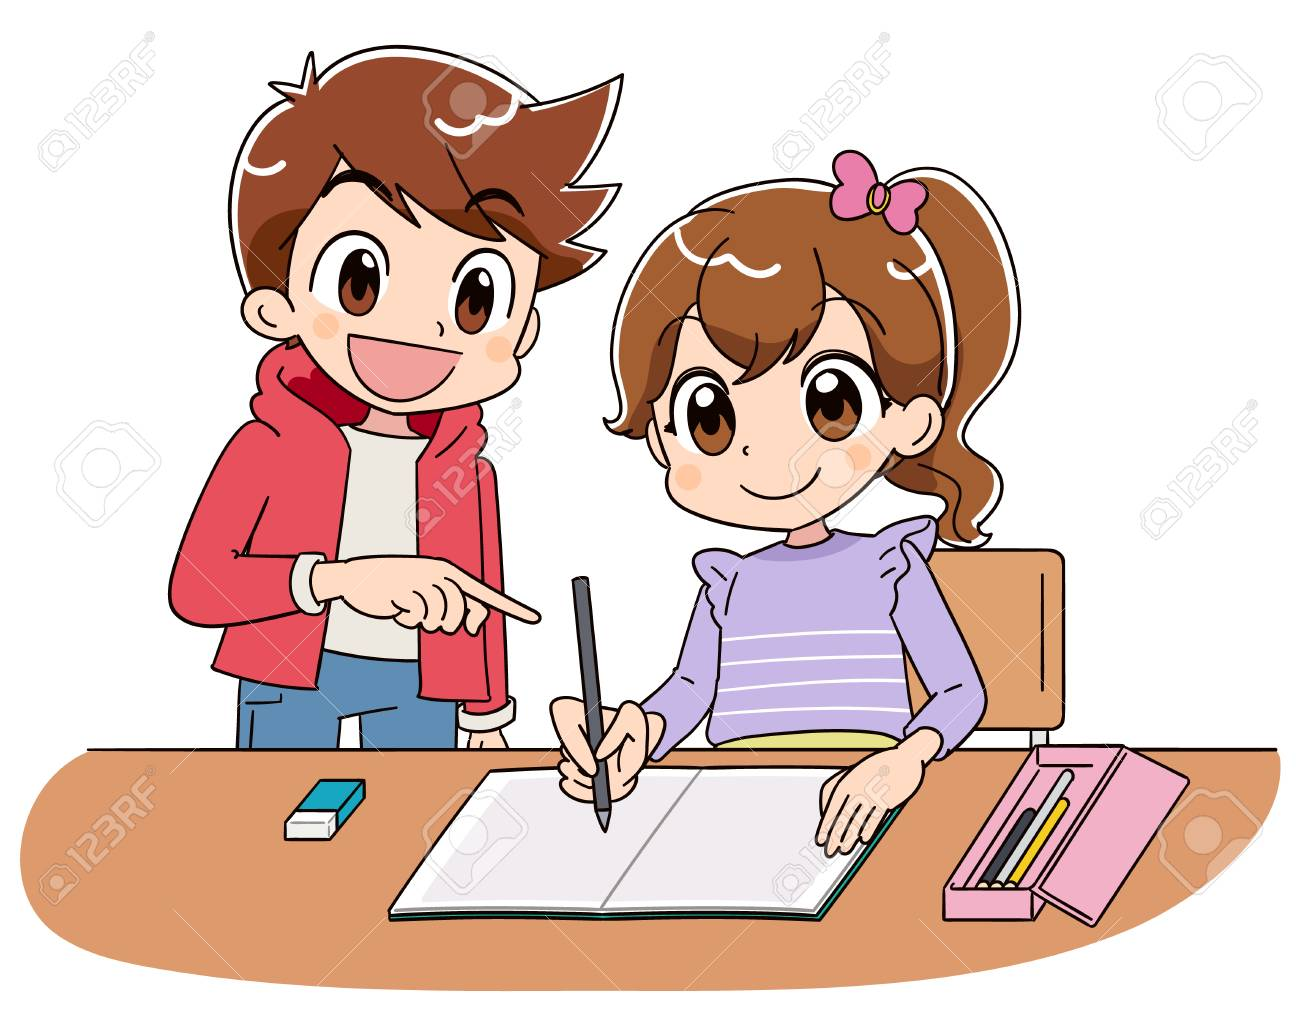 A girl is studying on a notebook. With a boy. - 116031651